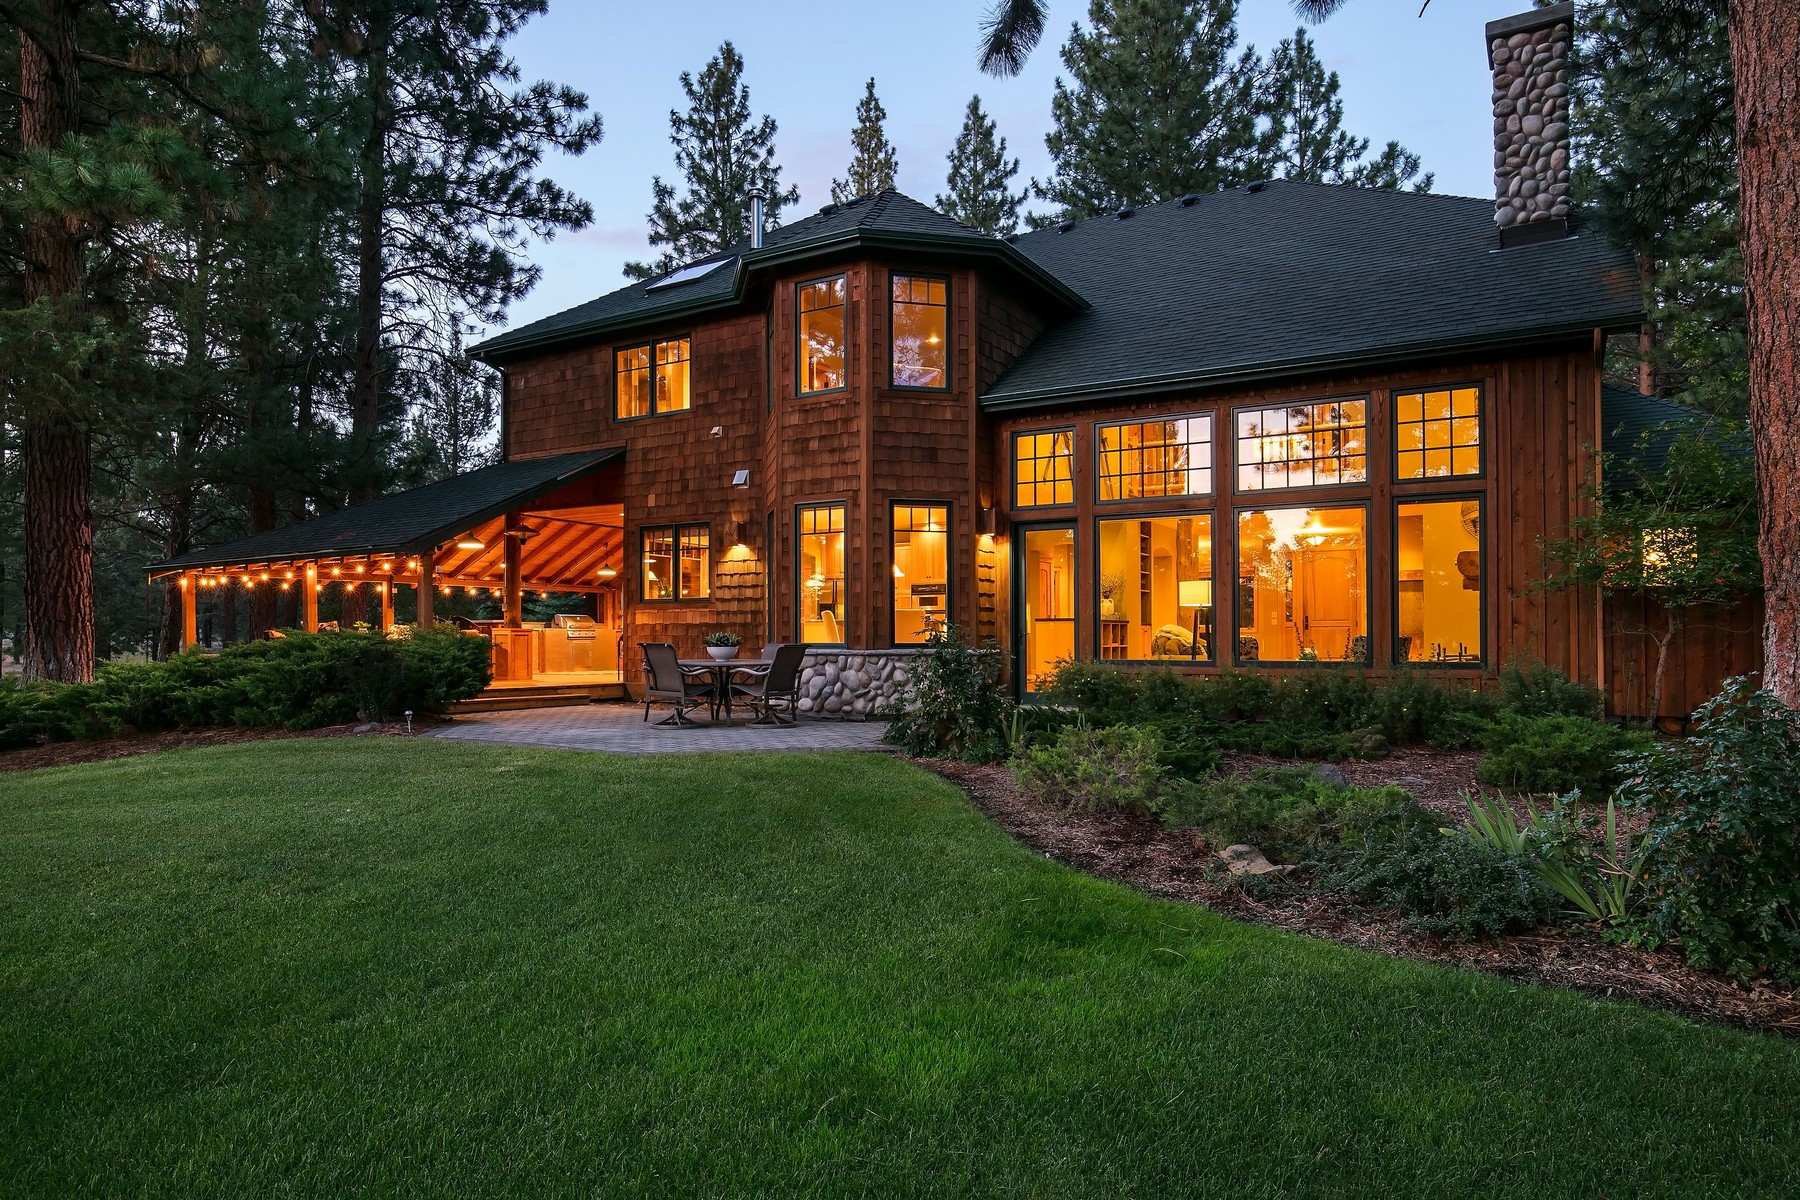 Single Family Homes for Active at Mountain, Pond & Golf Course Views - Sisters, OR 16872 Royal Coachman Dr Sisters, Oregon 97759 United States